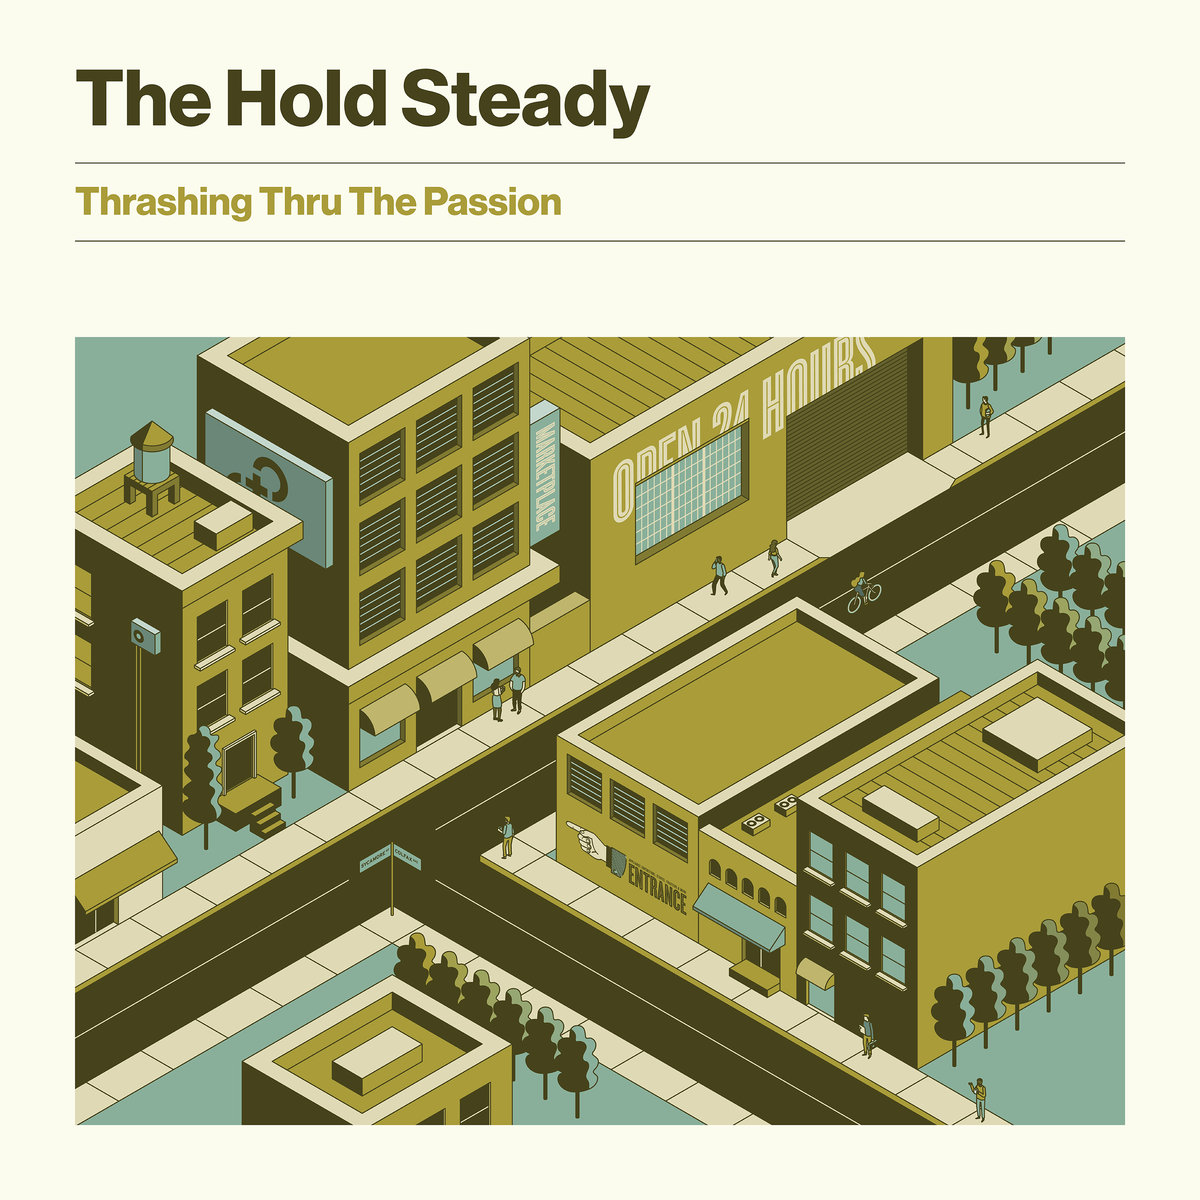 The Hold Steady Thrashing Thru The Passion